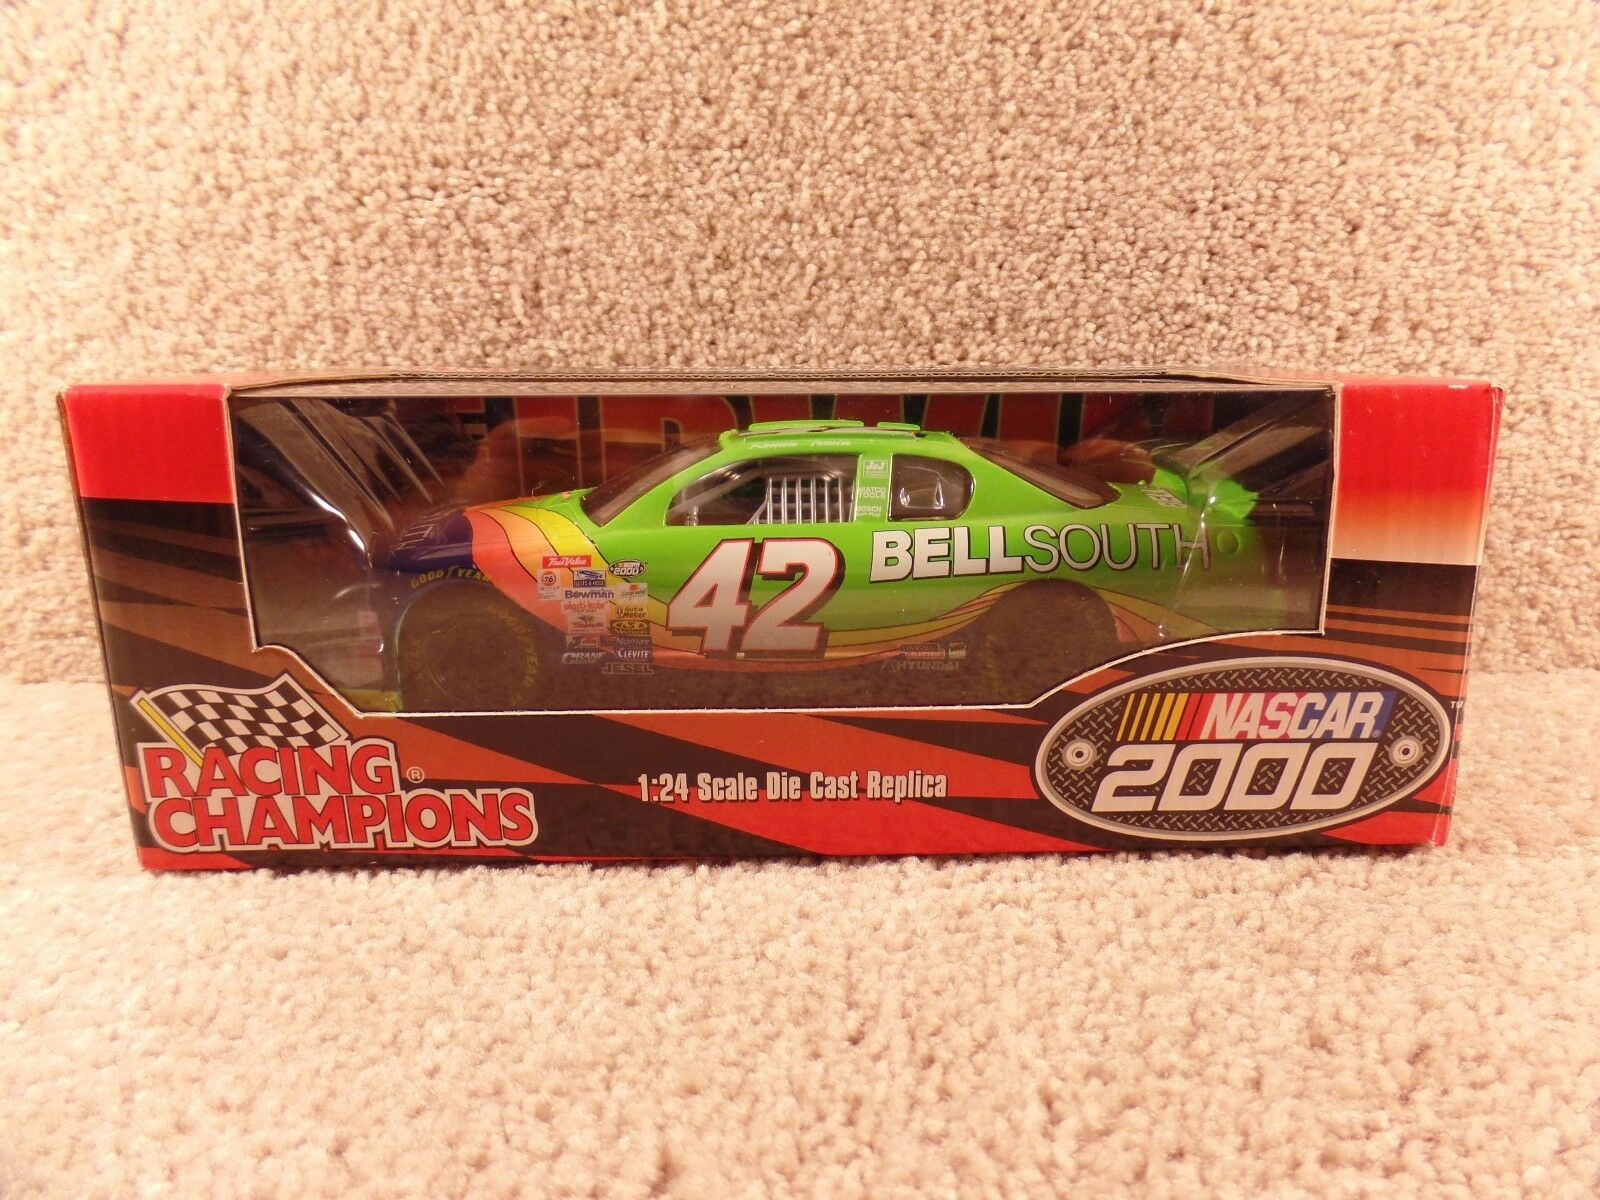 New 2000 Racing Champions 1 24 NASCAR Kenny Irwin Bell South Monte Carlo